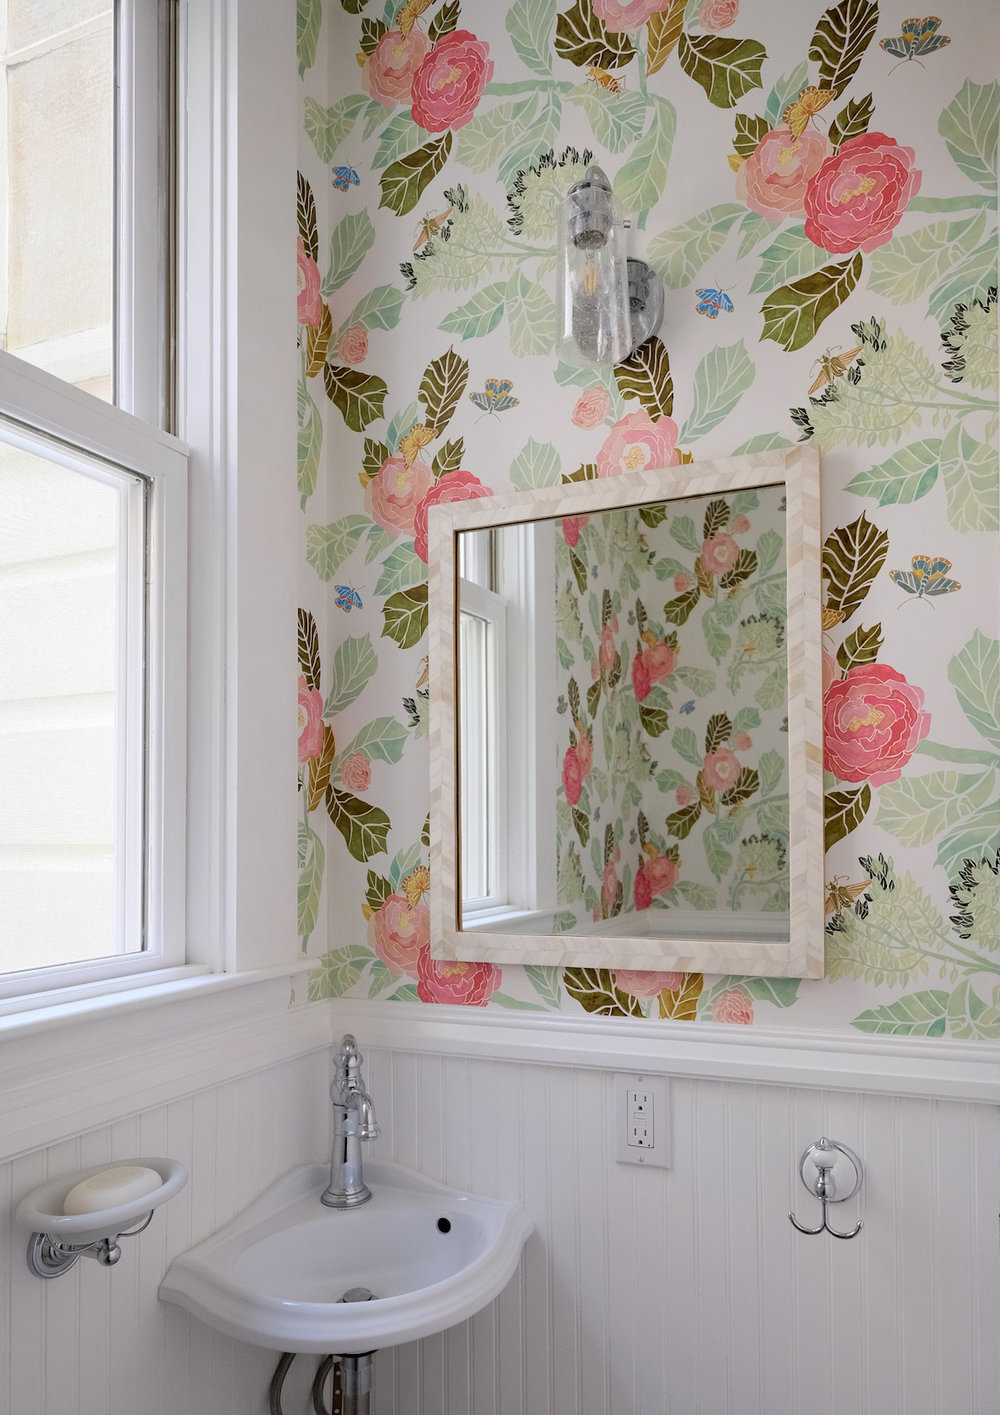 white powder room with floral wallpaper.jpg